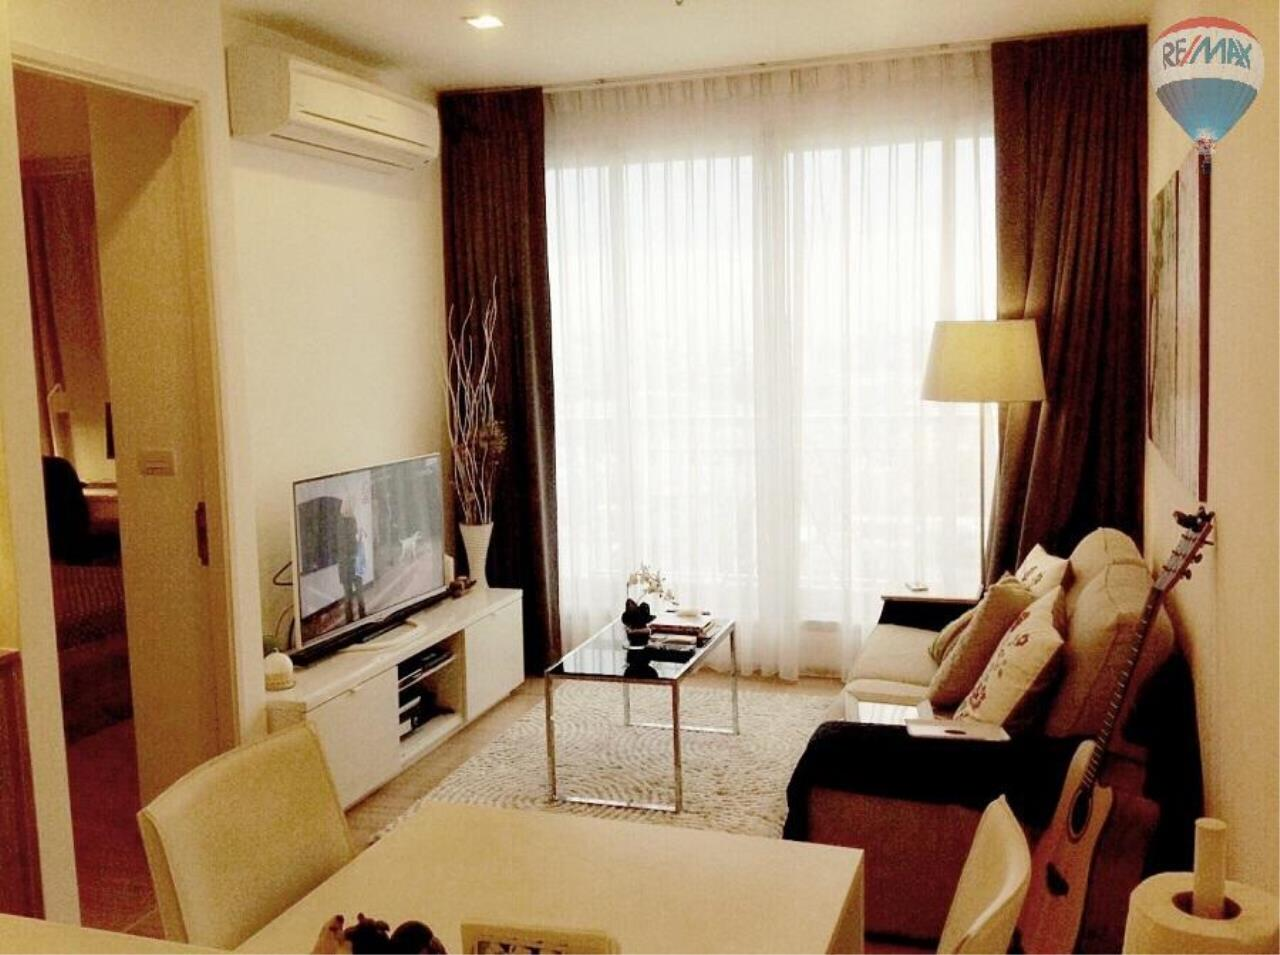 RE/MAX Properties Agency's 1 bedroom 45 Sq.M. for renting 32,000 THB in Rhythm Sukhumvit 1